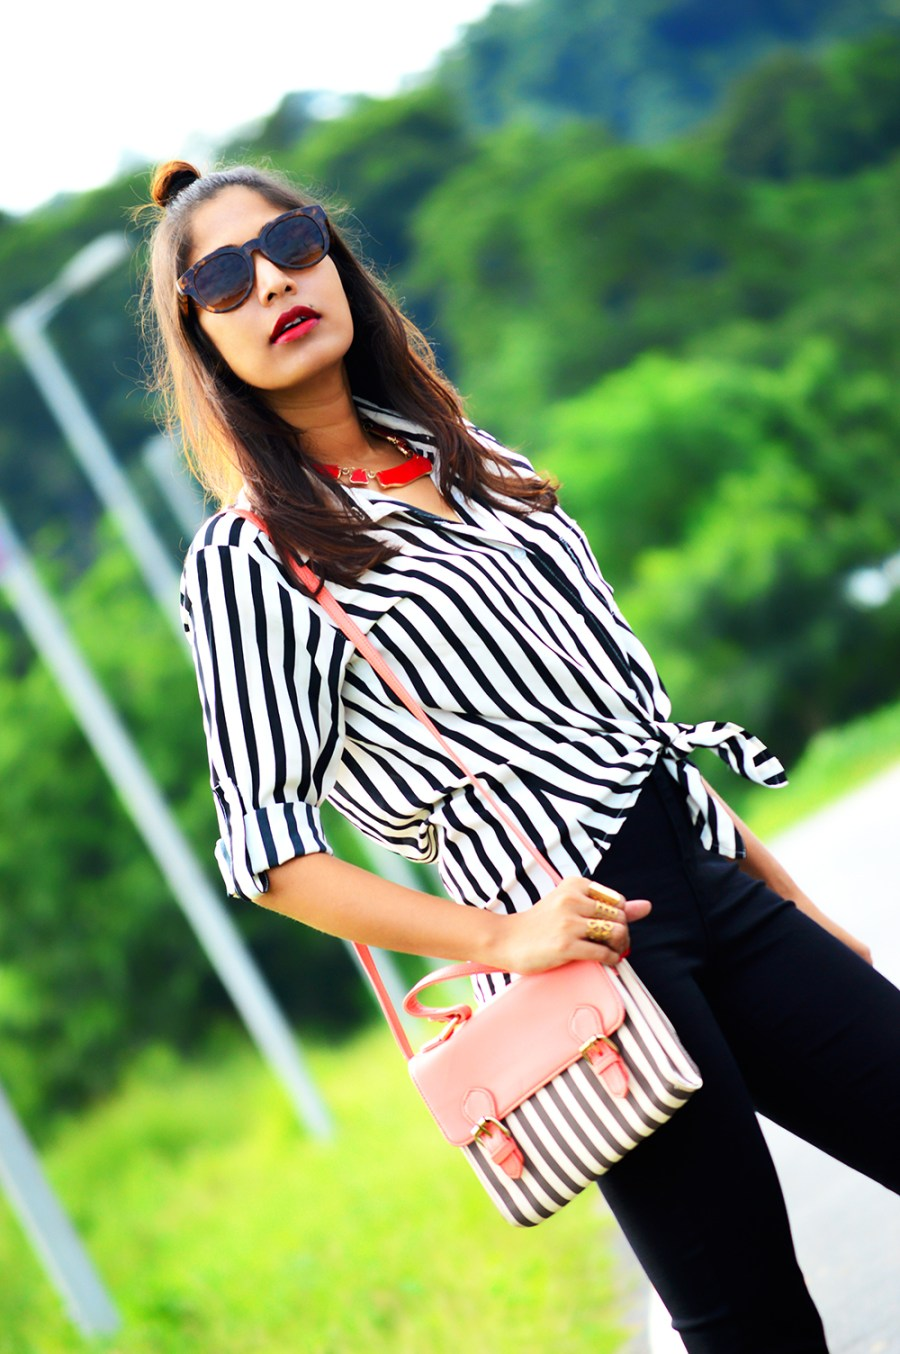 Fashion, Style, Indian Fashion Blogger, Fashion Blogger, Street Style, Summer Fashion, Stripes, Striped Shirt, Black High Wasit Jeans, Black Boots, Hairstyle, Style Over Coffee, Beauty, Sarmistha Goswami, Pankaj Jyoti Barua-4